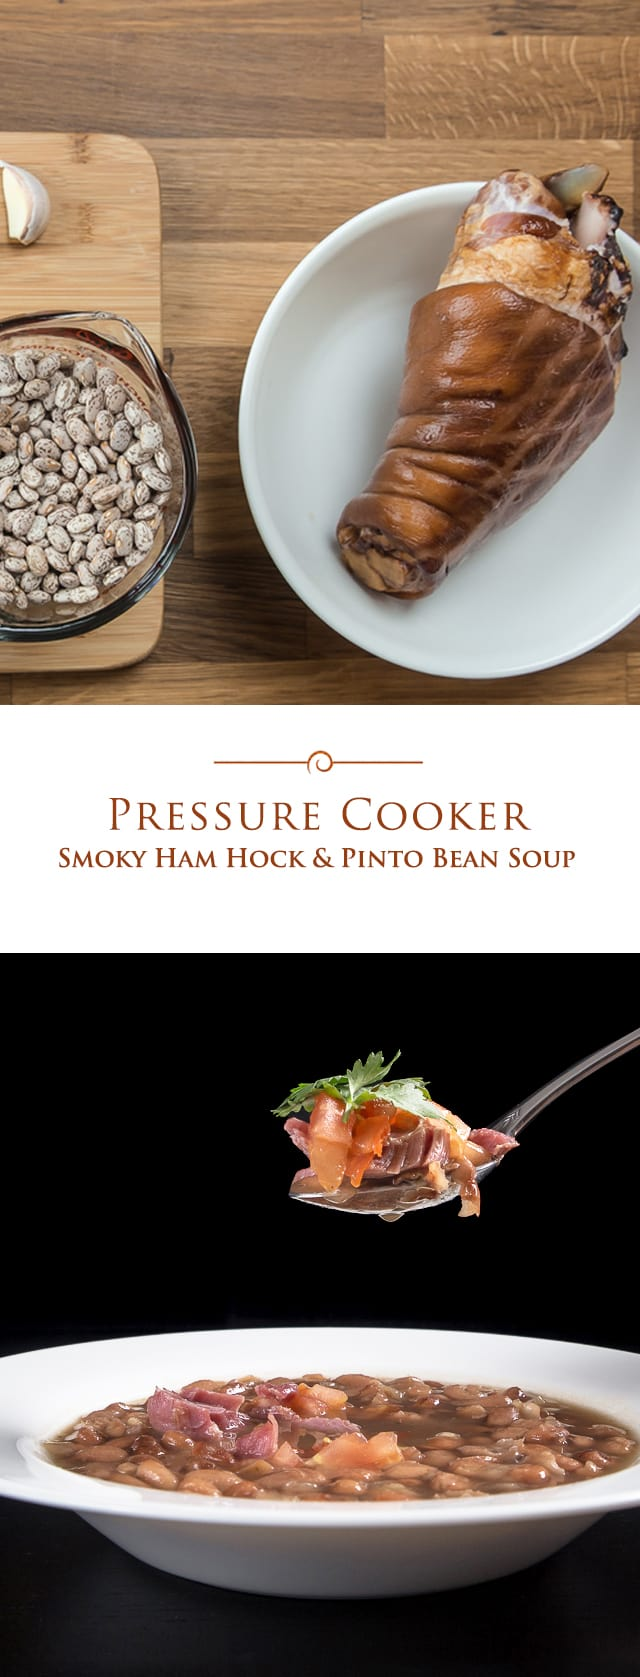 A Pressure Cooker Smoky Ham Hock and Pinto Bean Soup full of textures and flavor. You'll love how the tender ham give the soup a smoky flavor.